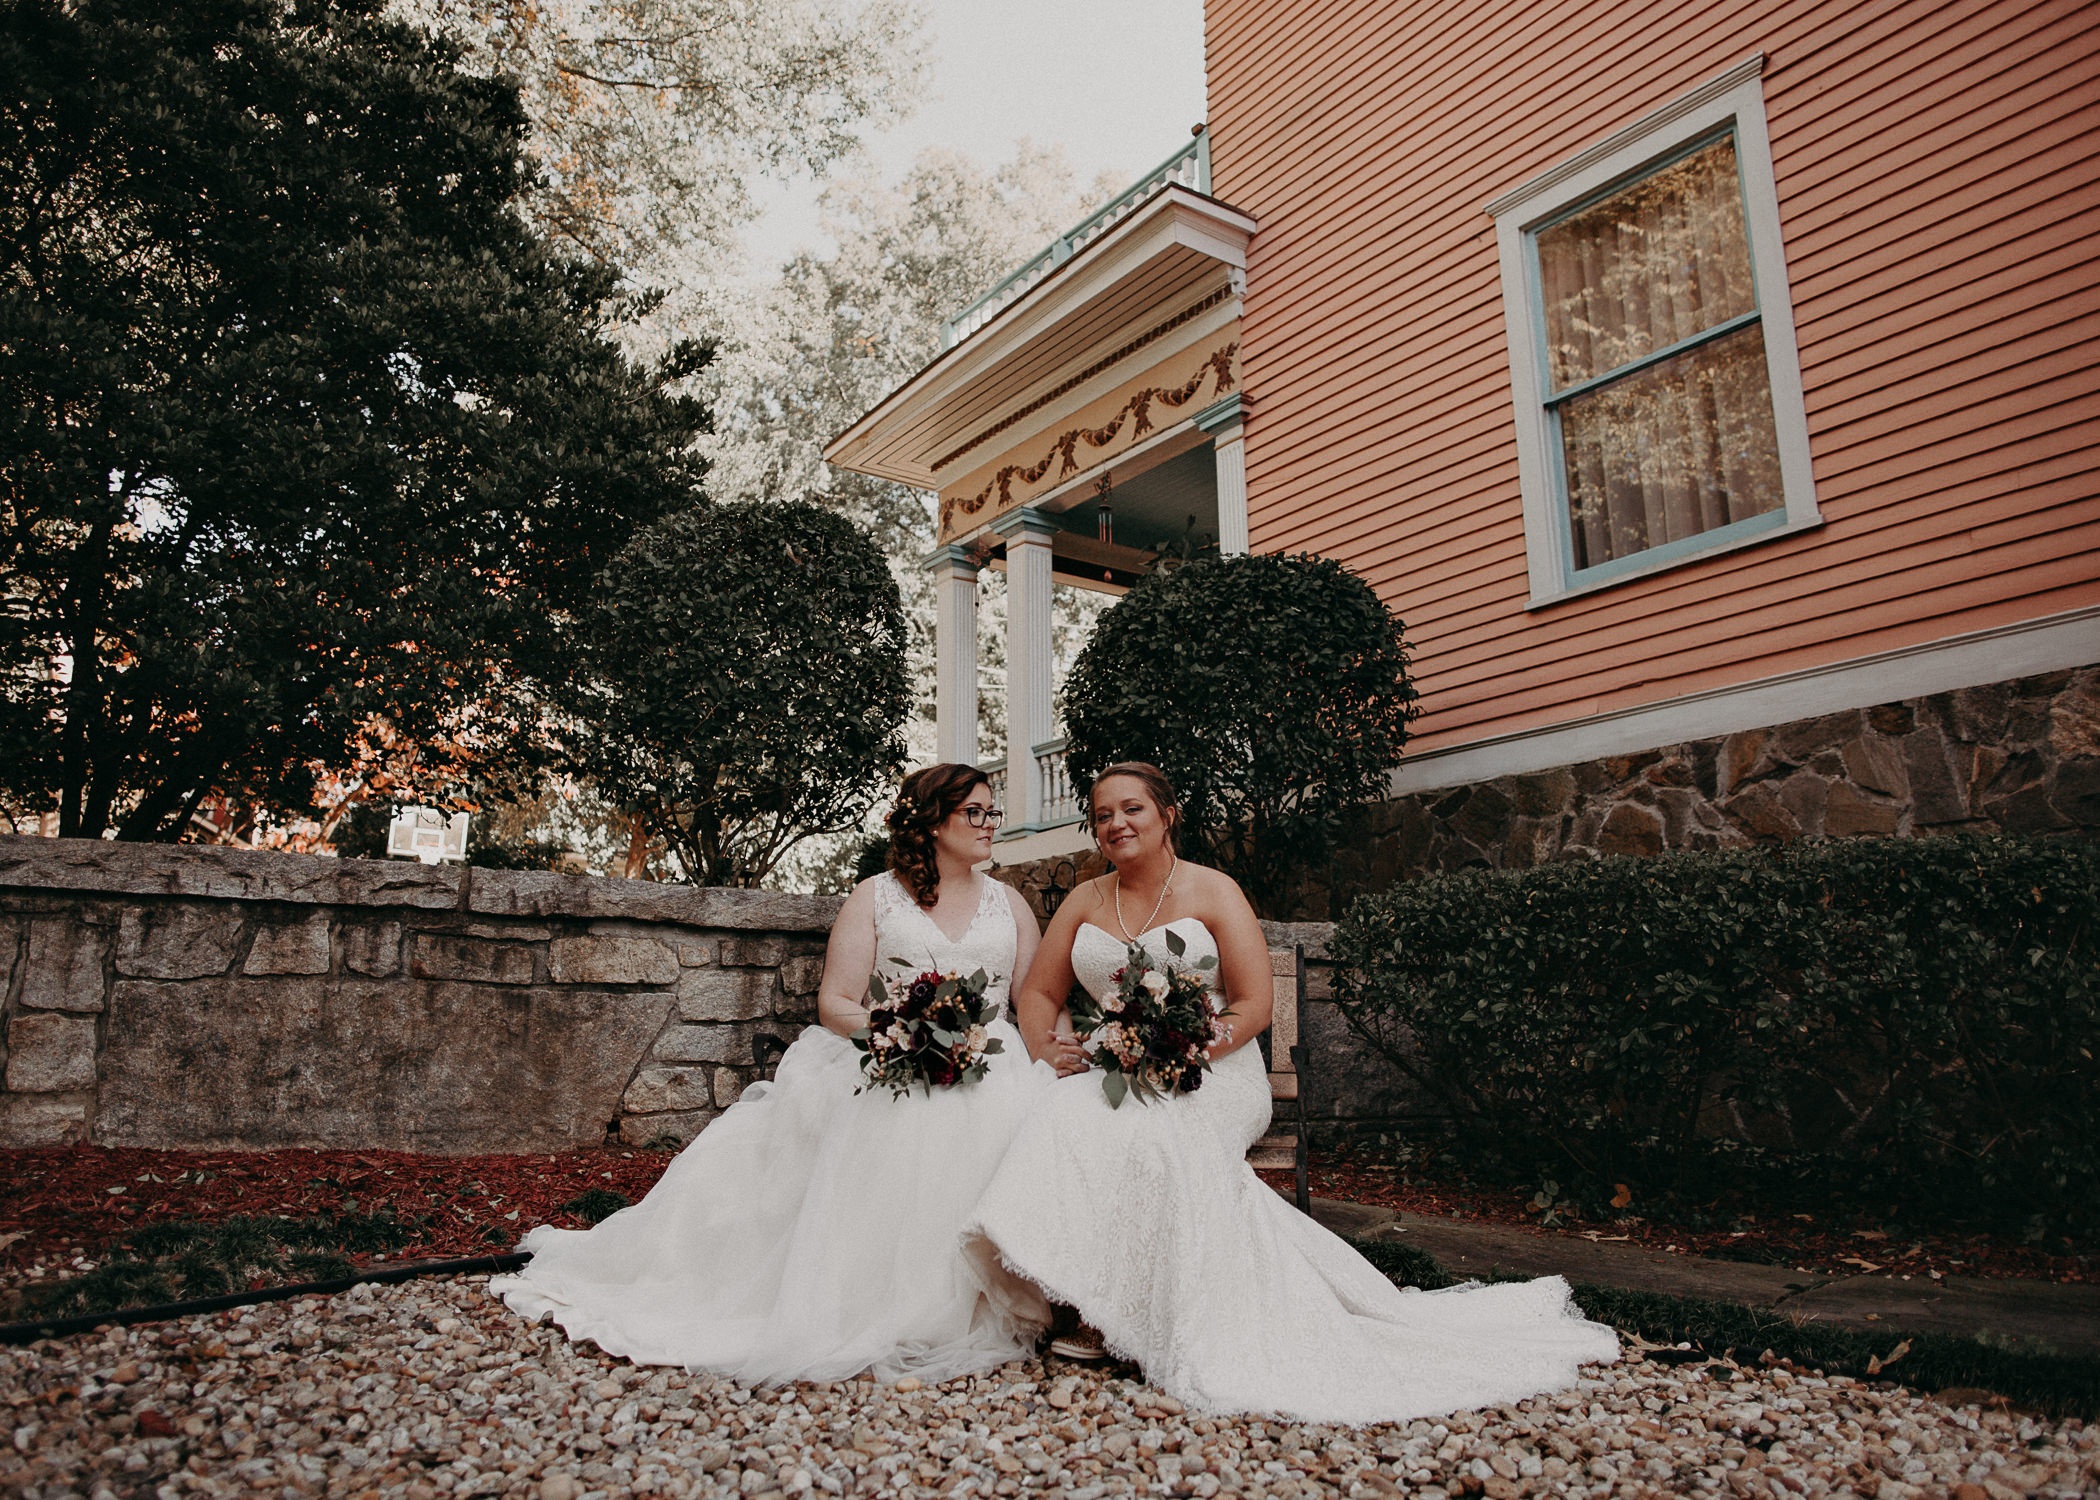 39 - Atlanta wedding photographer - Same sex wedding - wedding dress - details - ceremony - reception - bridal party - two brides. Aline Marin Photography .jpg.JPG